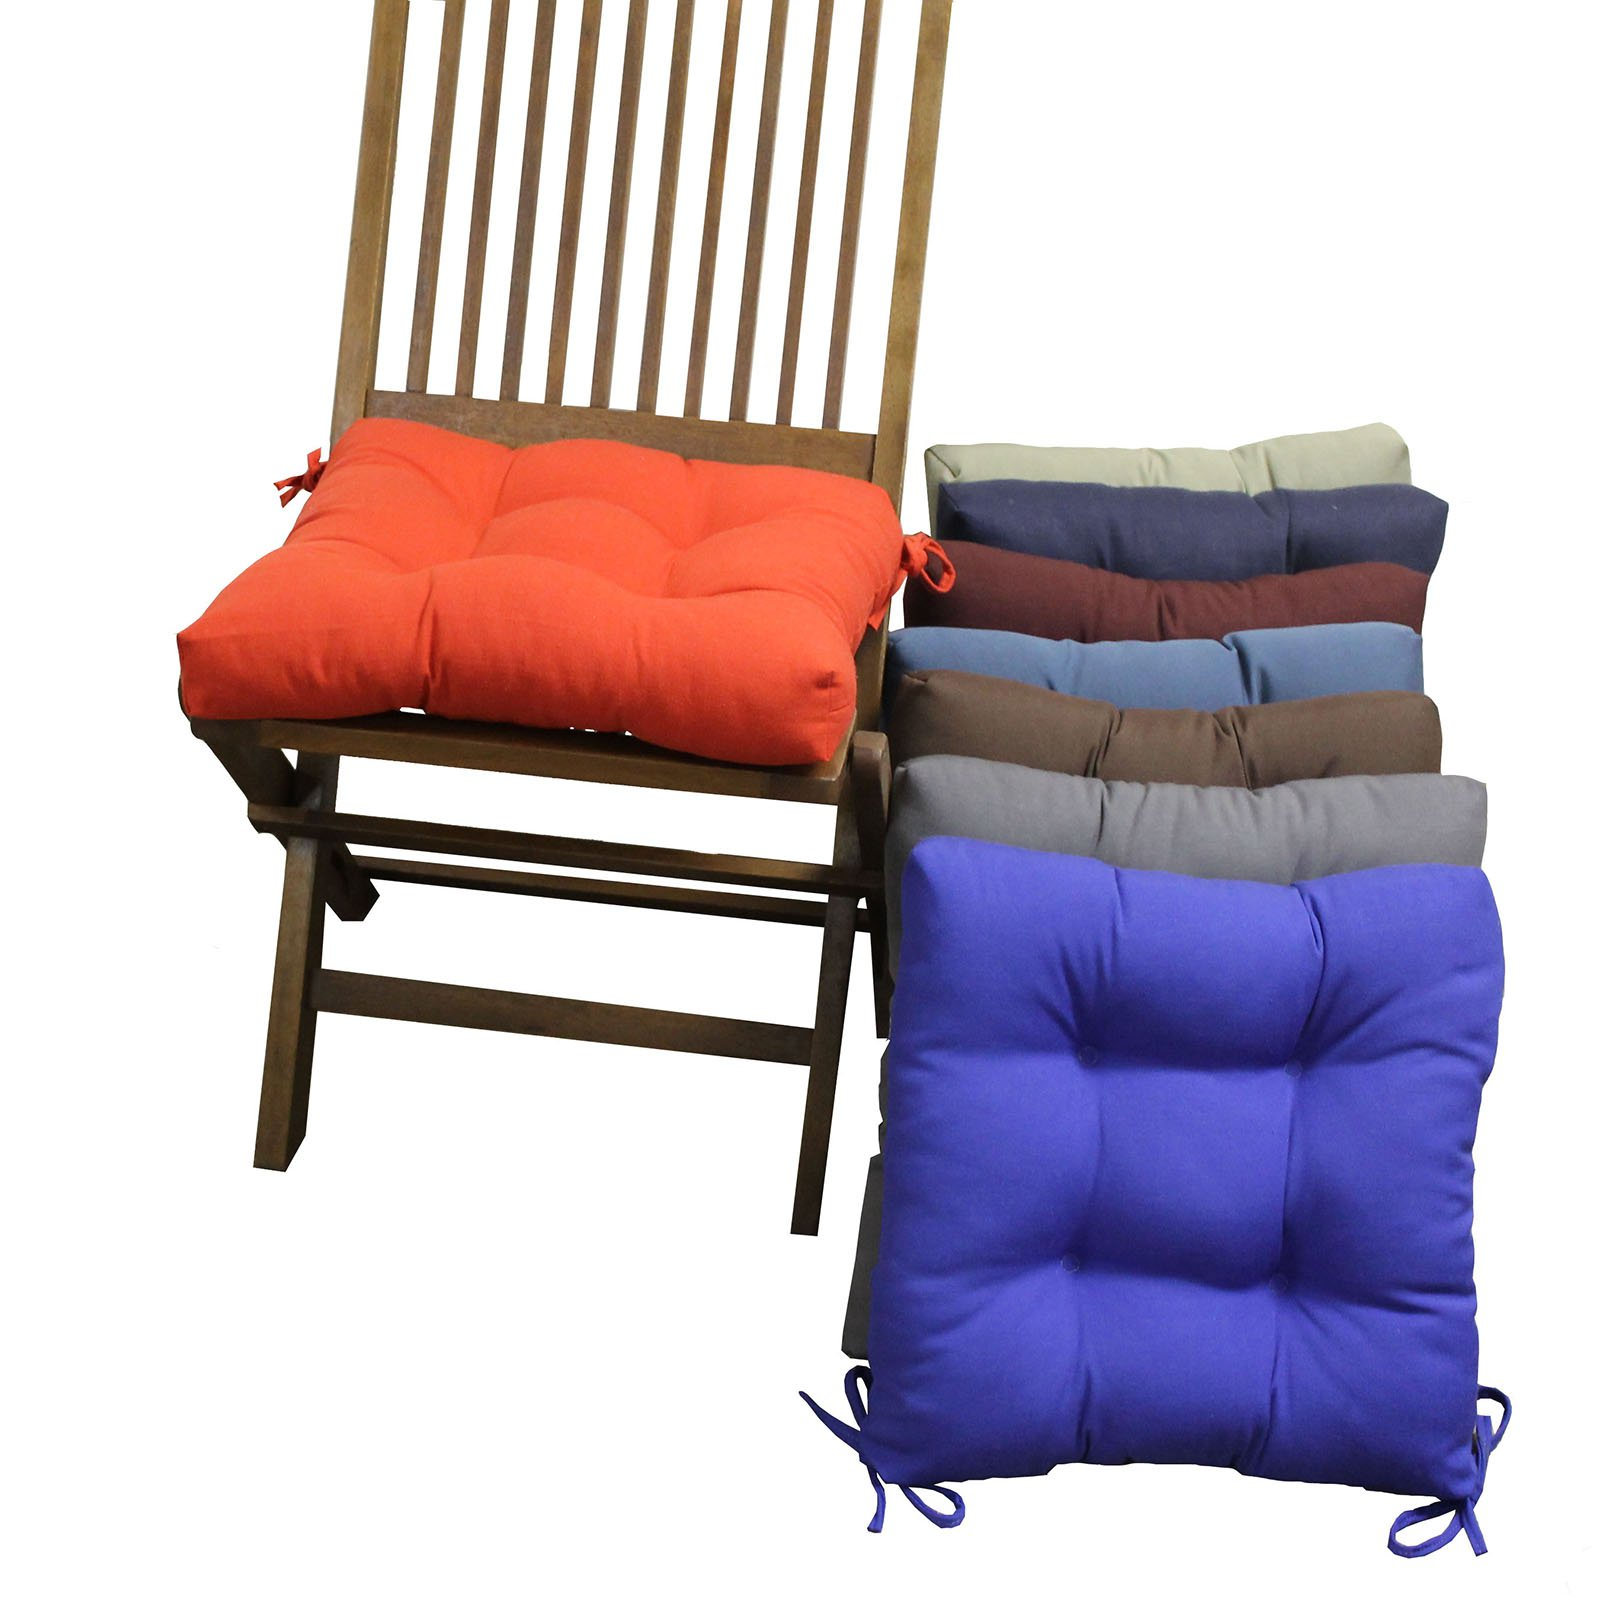 Gripper Jumbo Rocking Chair Cushions Venus Walmart.com. Full resolution  file, nominally Width 1600 Height 1600 pixels, file with #C32A08.